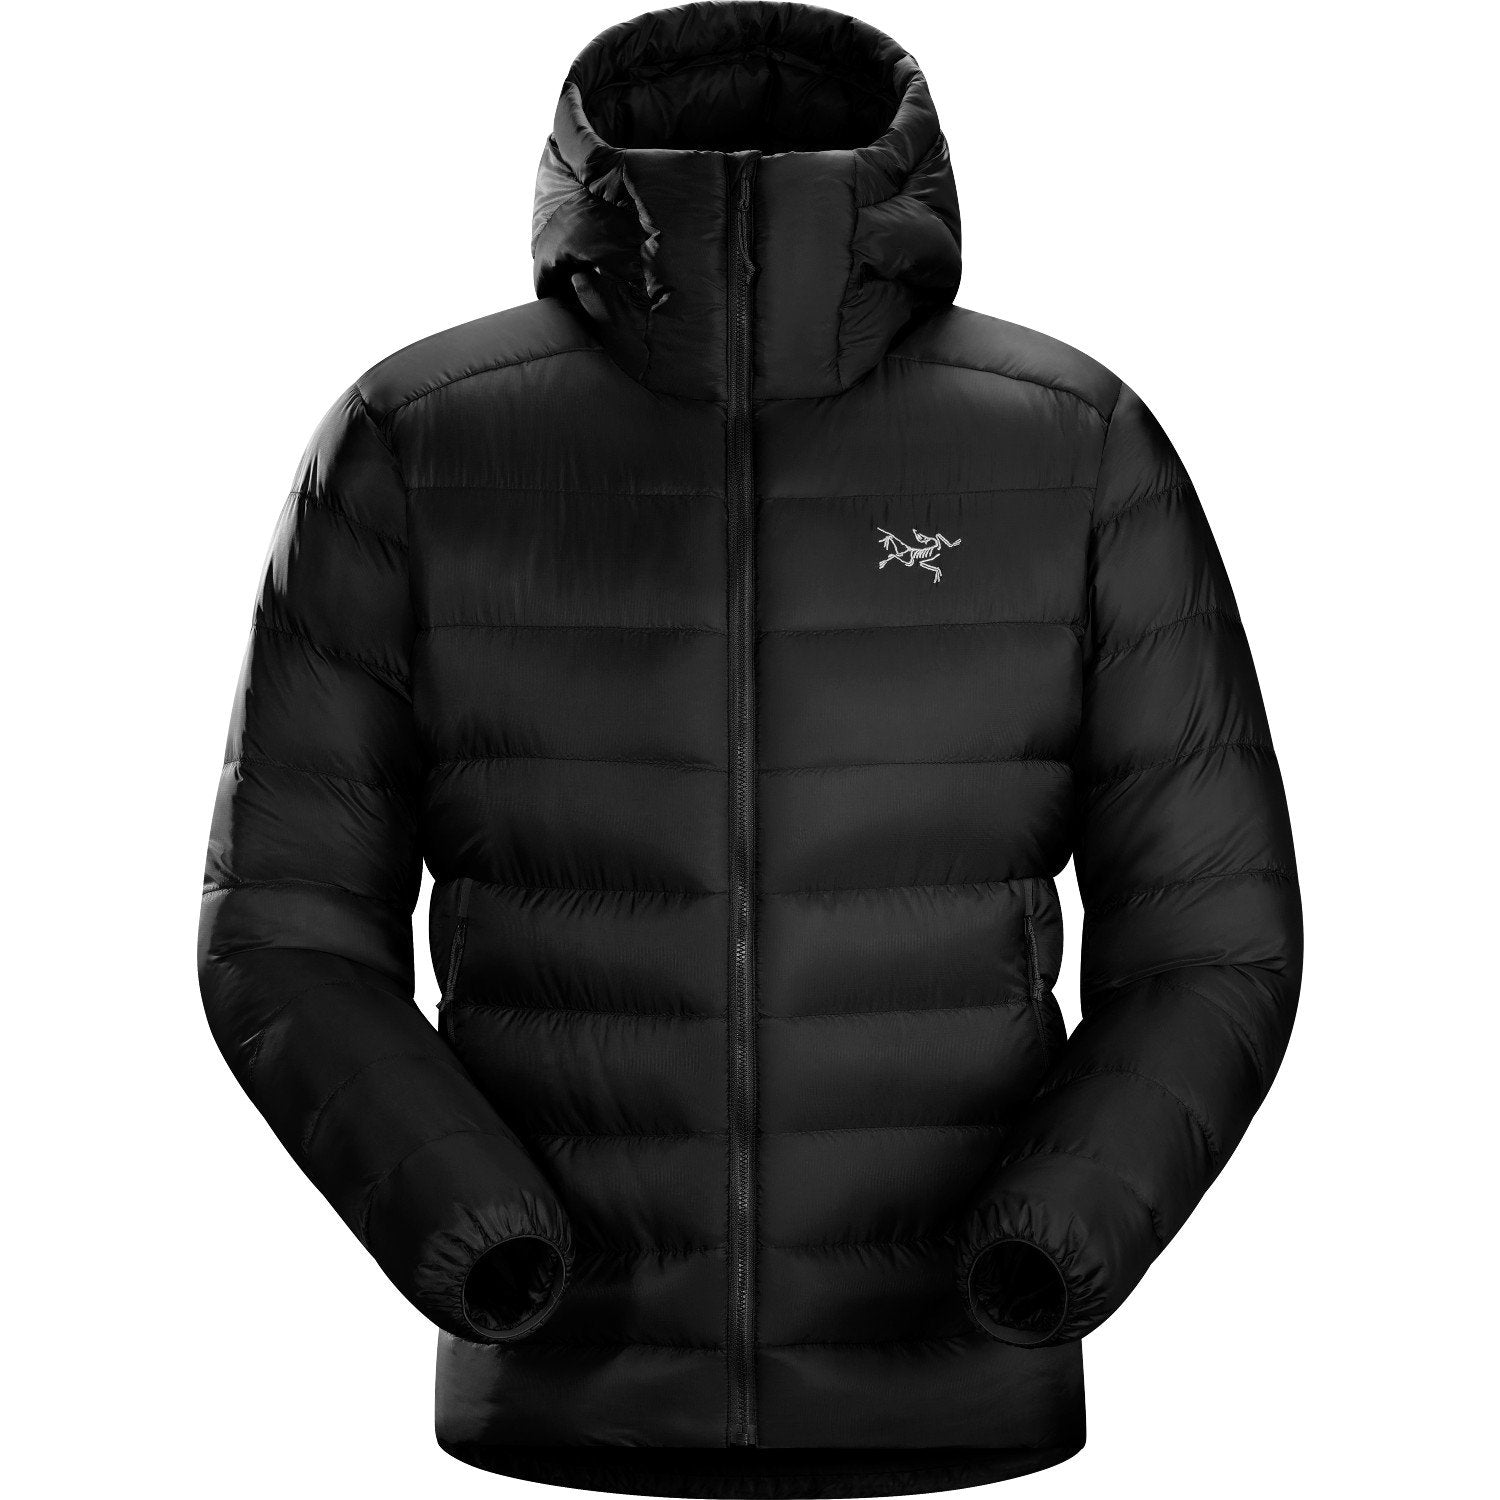 Arc'Teryx Cerium SV Hoody in Black. Front View